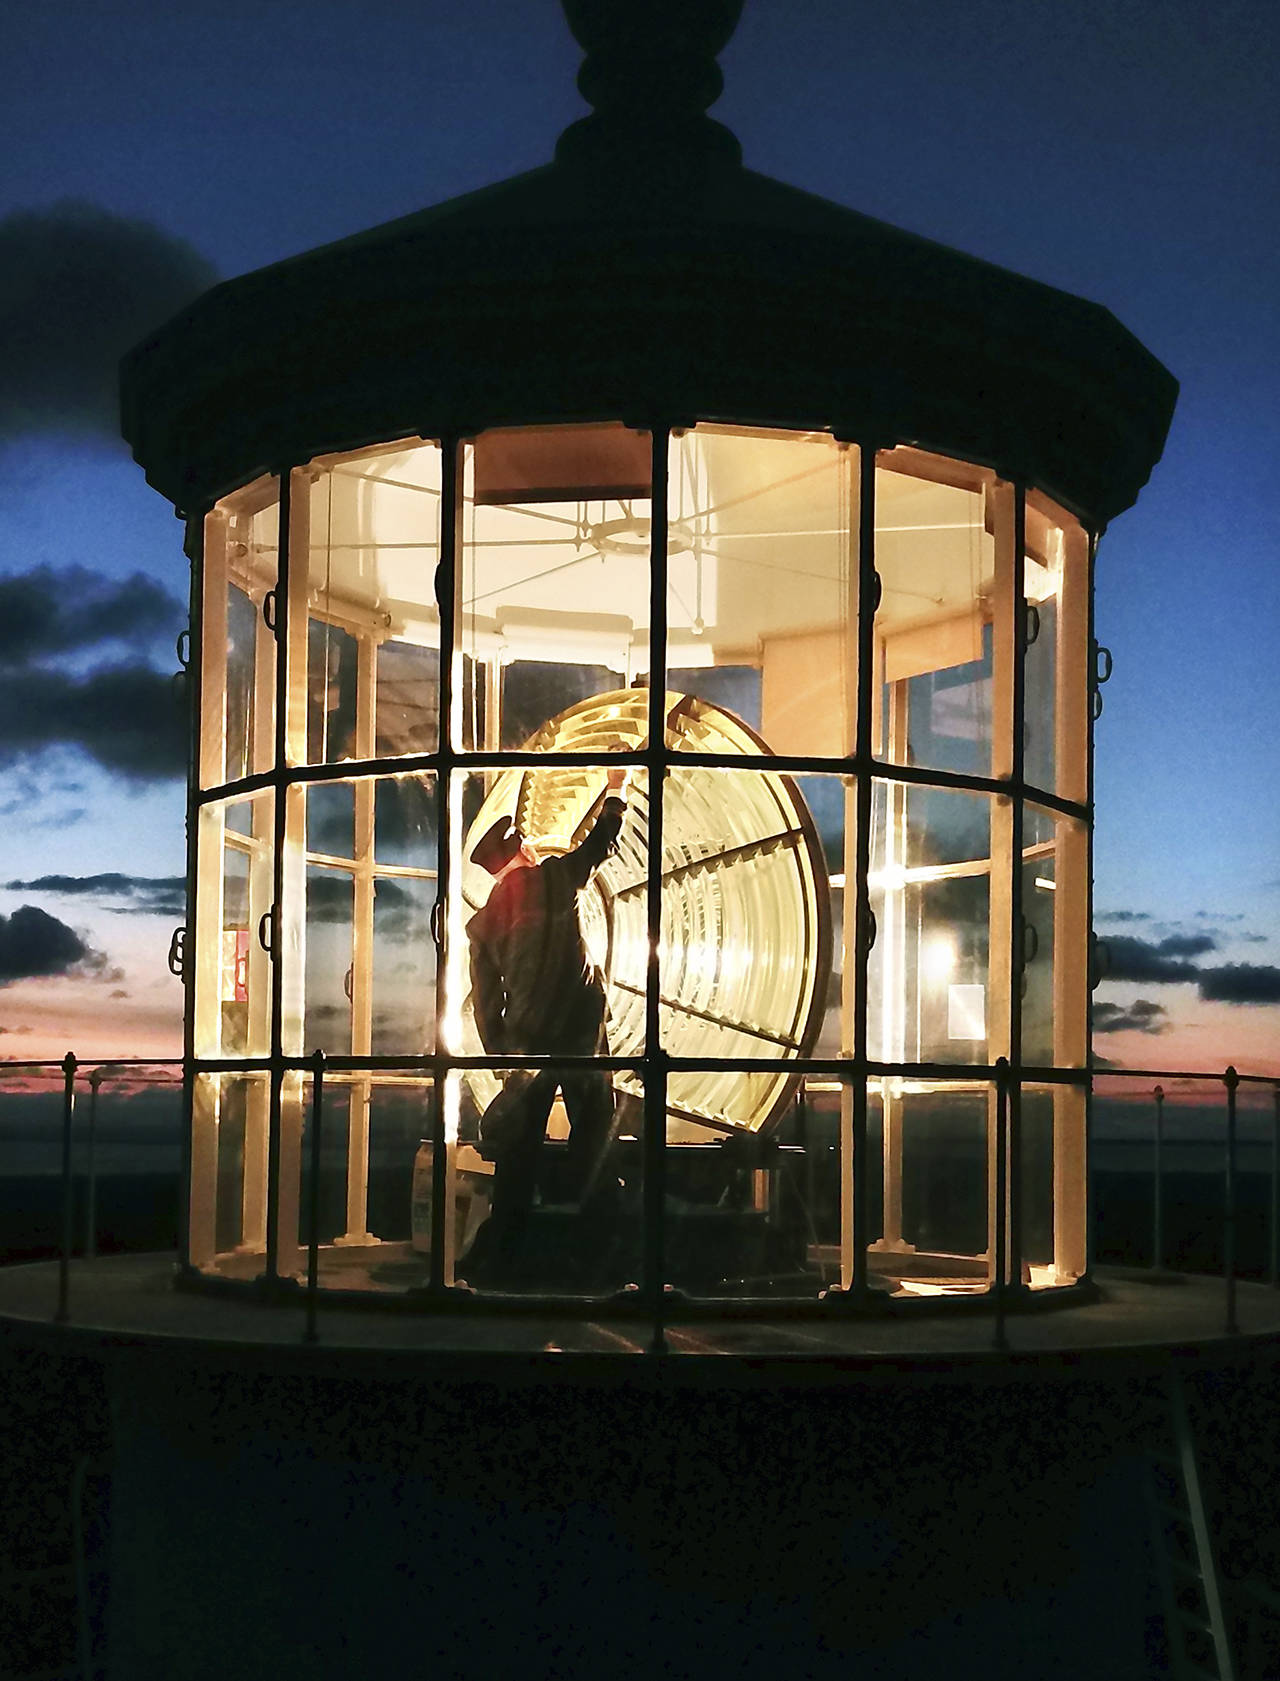 Photo by Pete Lerro                                 Jeff Pence, a member of the Westport-South Beach Historical Society, cleans the Fresnel lens wearing traditional keeper's garb.